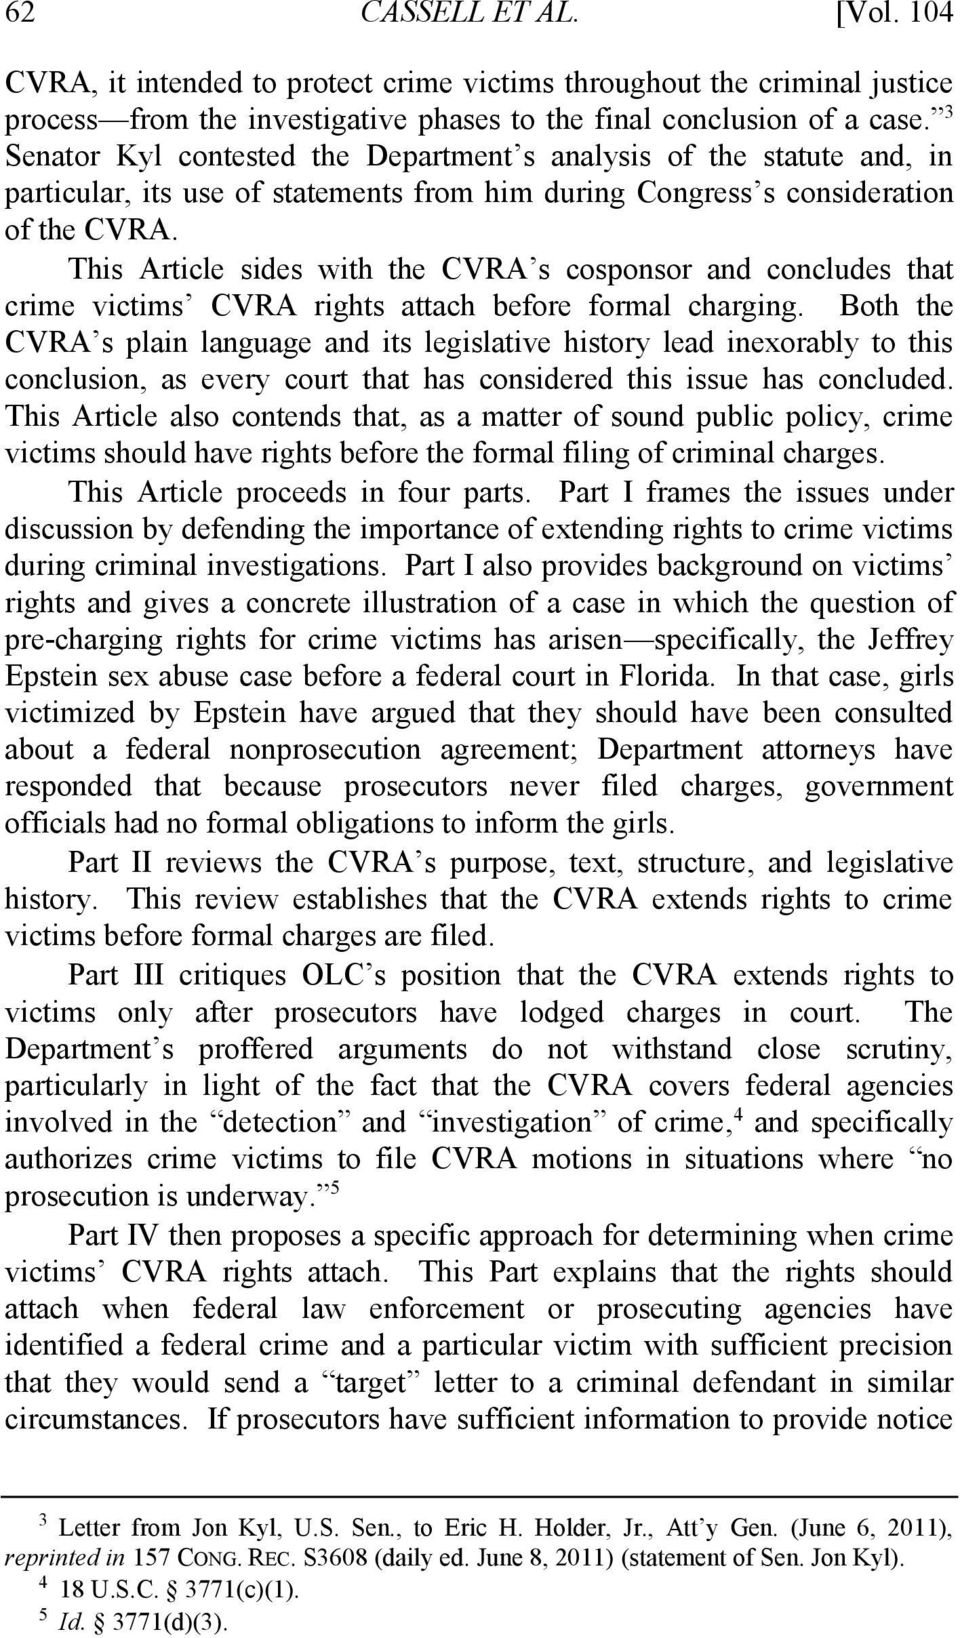 This Article sides with the CVRA s cosponsor and concludes that crime victims CVRA rights attach before formal charging.